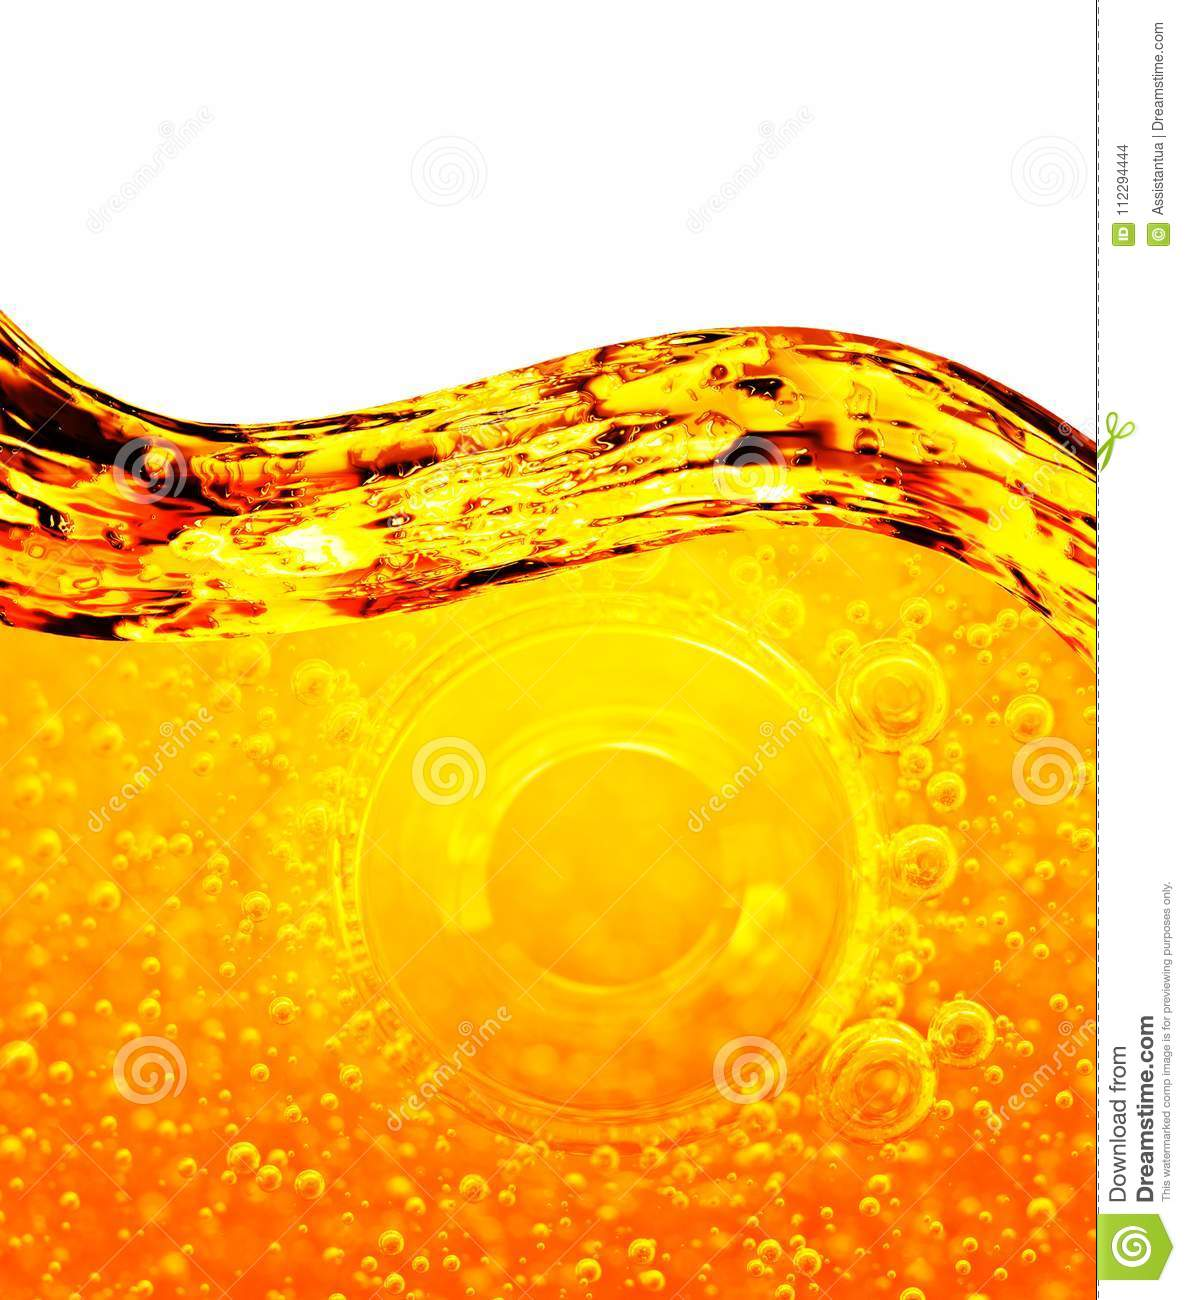 Oil Background With Air Bubbles  Stock Photo - Image of bubble